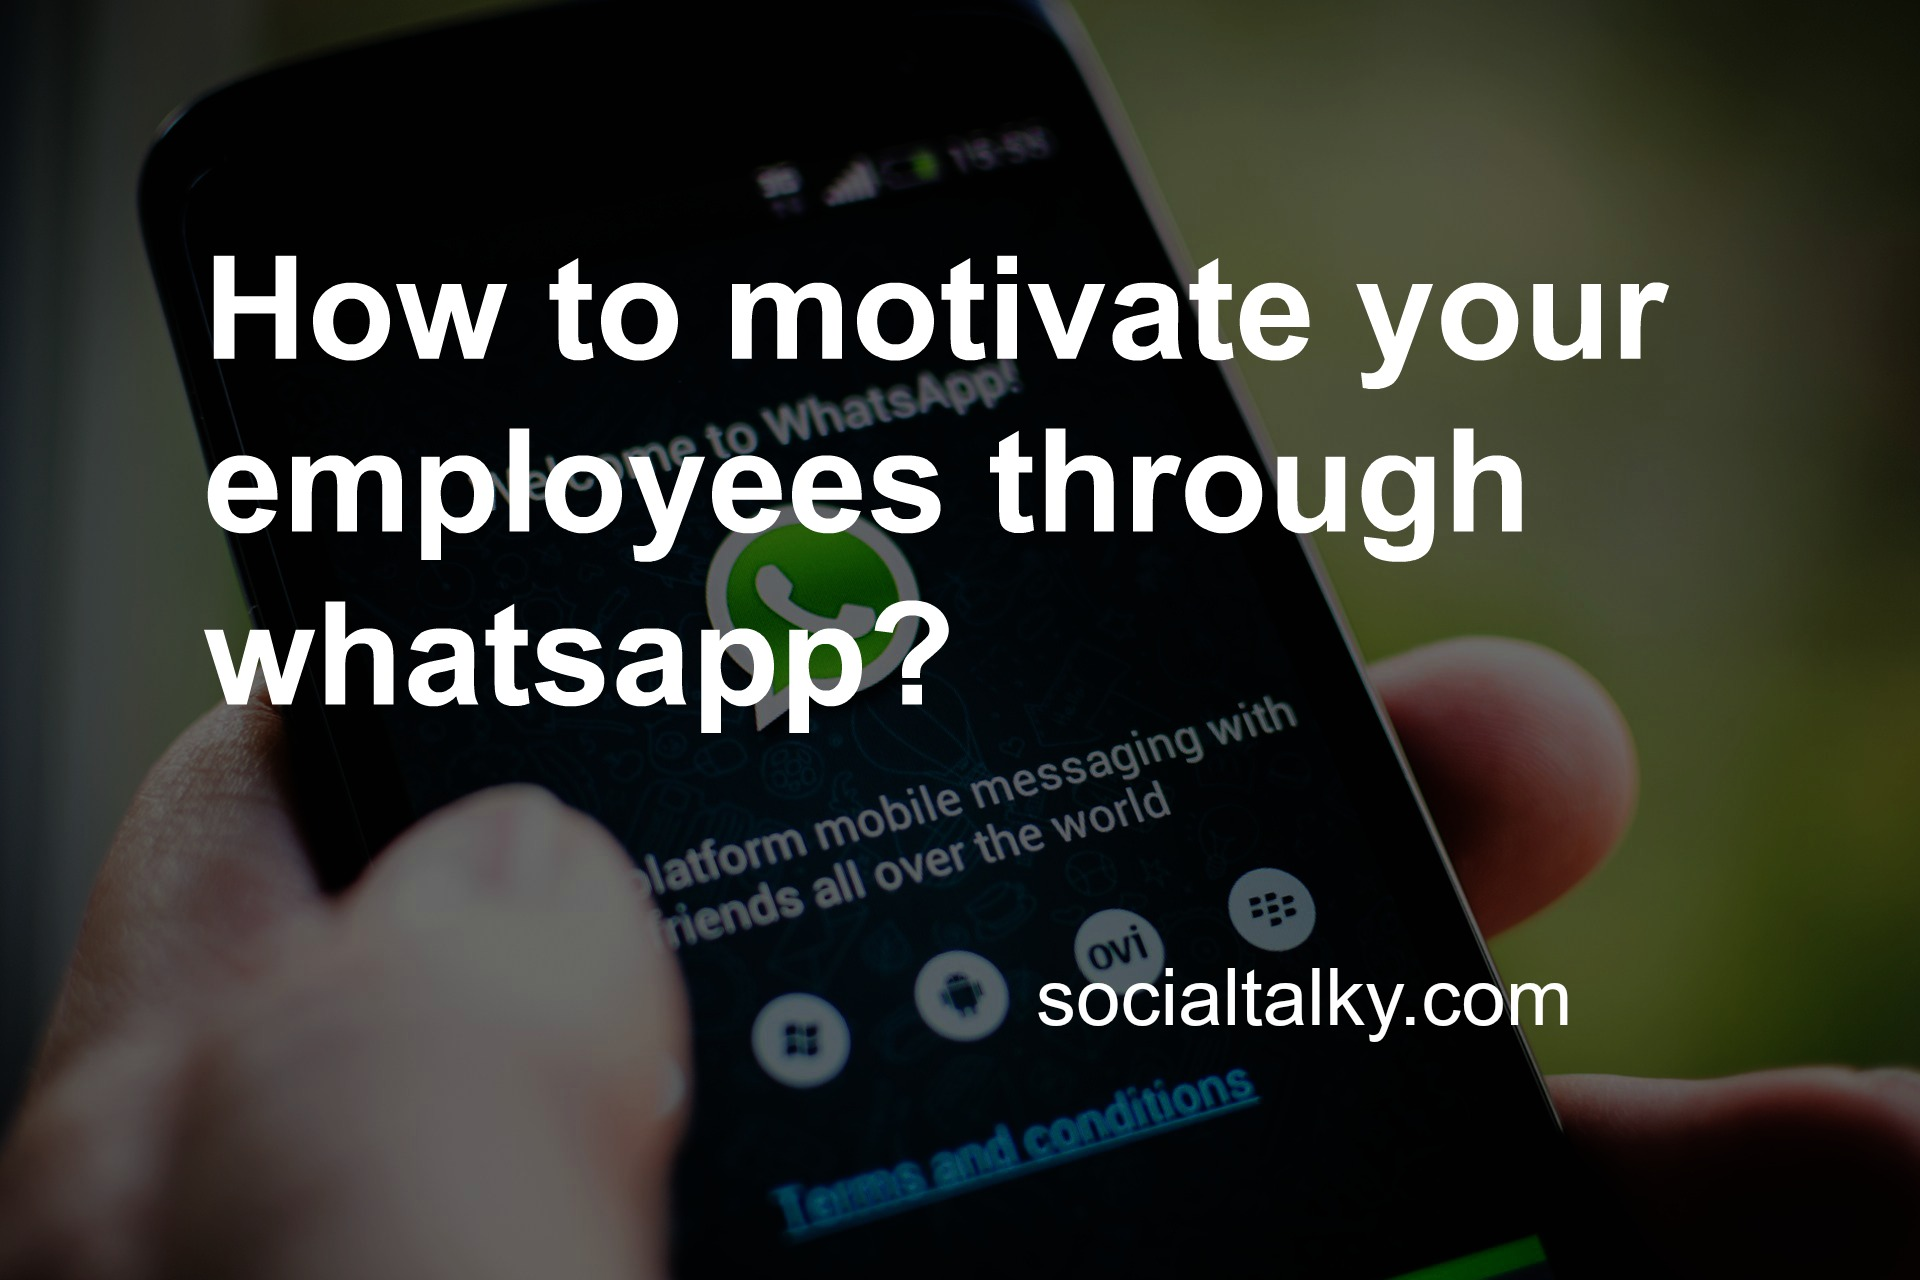 How to motivate your employees through WhatsApp?